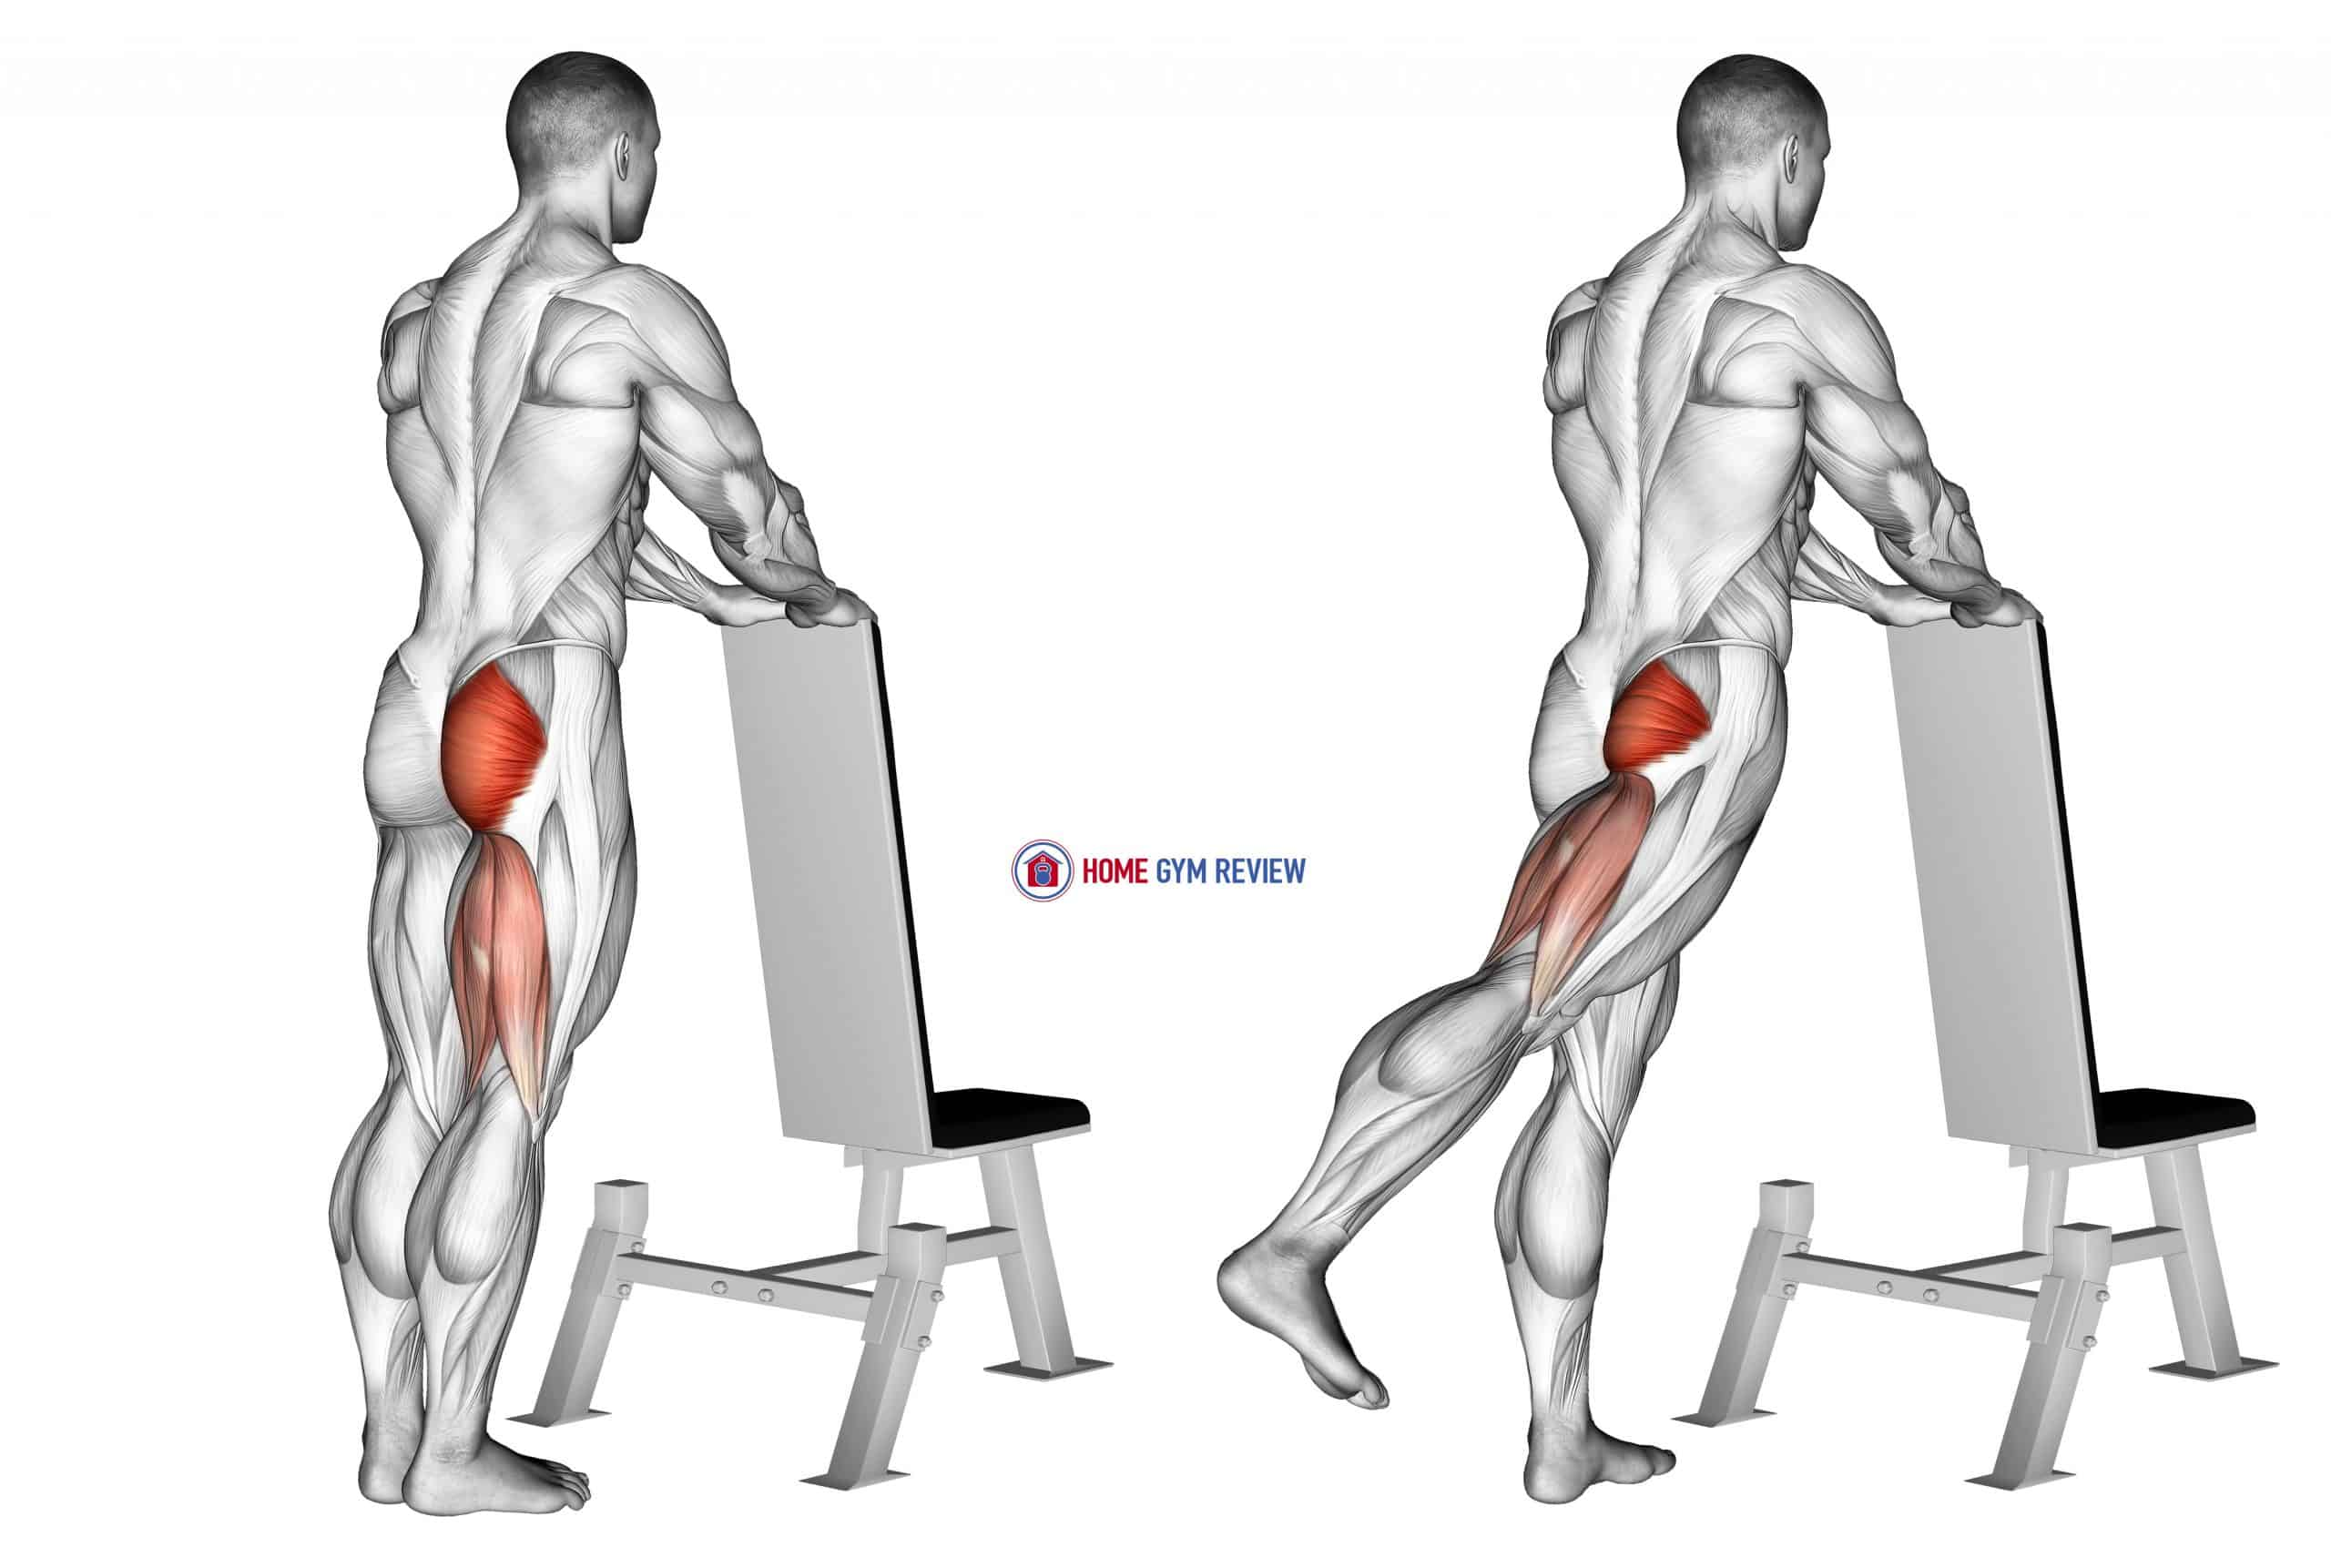 One leg kickback (with bench support)